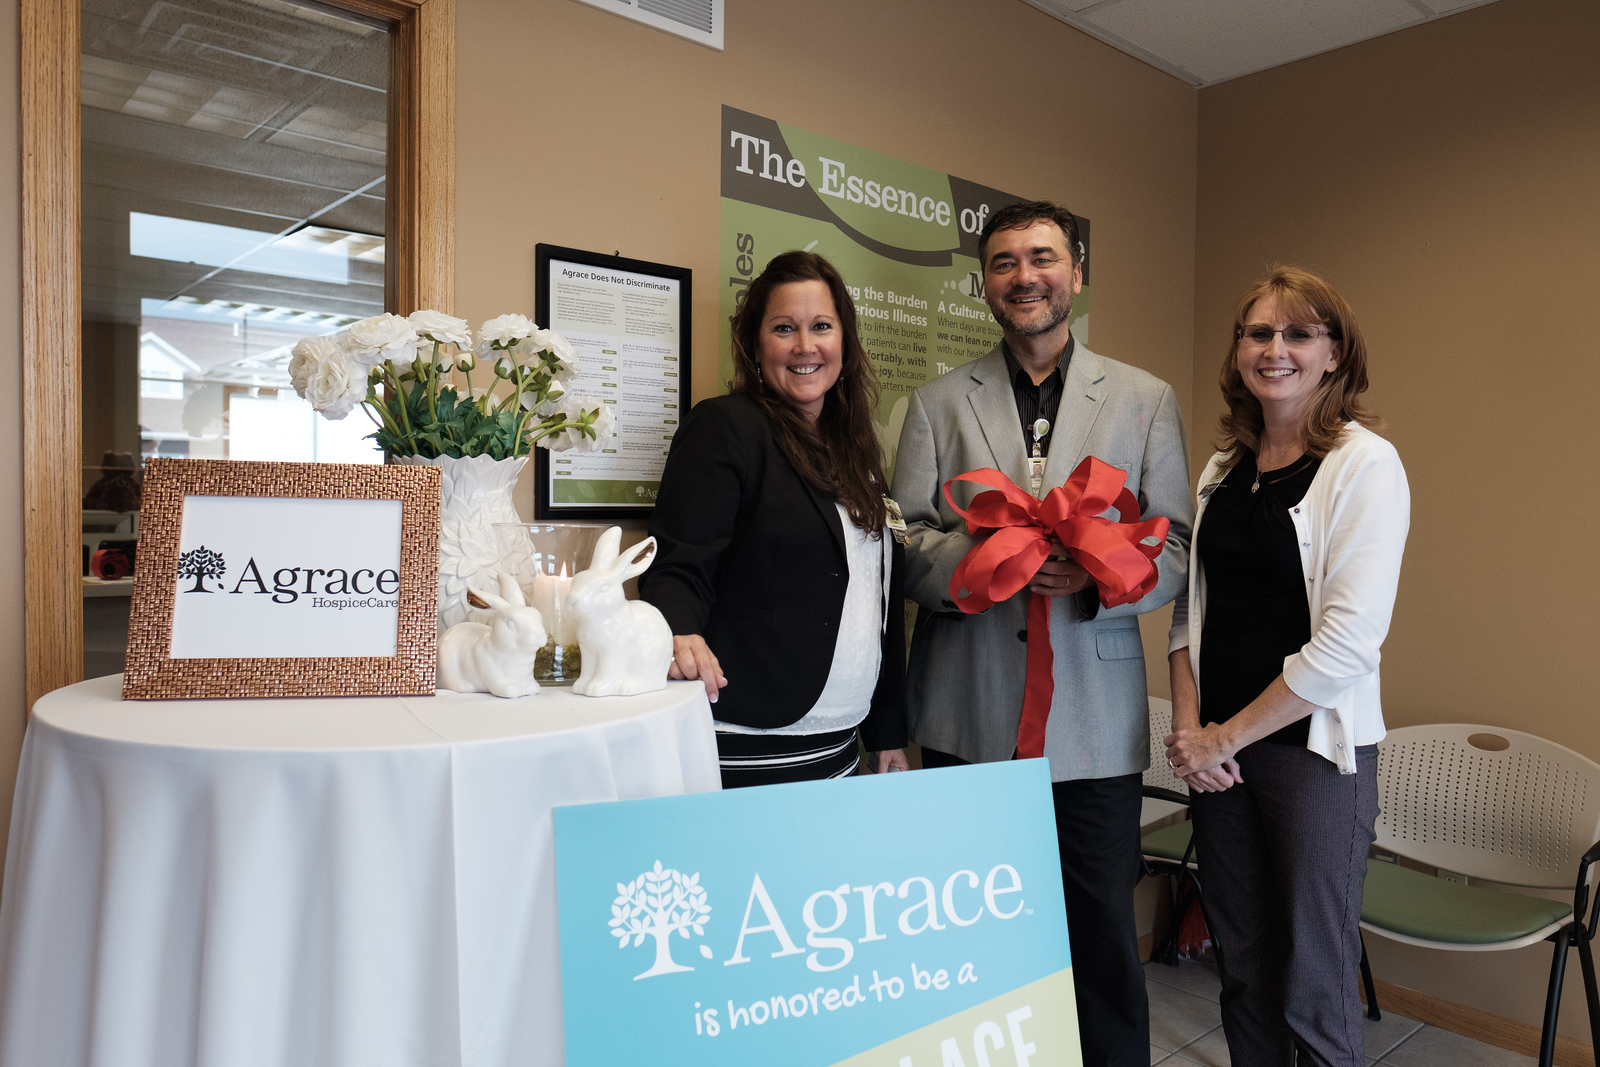 AGrace Rockford Ribbon Cutting